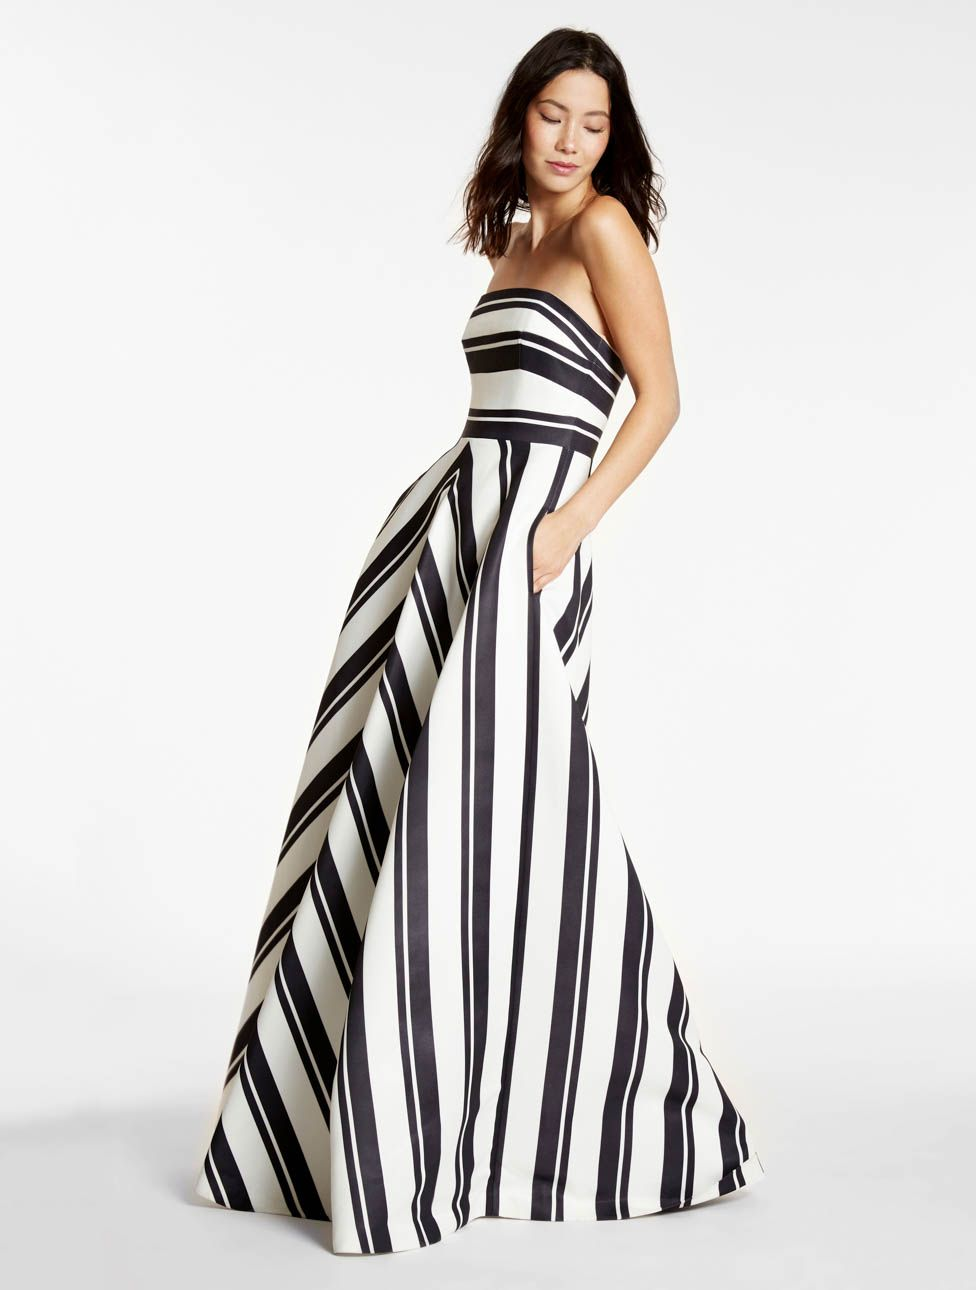 93979d164a8b Strapless Variegated Stripe Gown, Prom & Wedding, Celebrity Style Ideas &  Outfit Inspiration, How to Wear Stripes